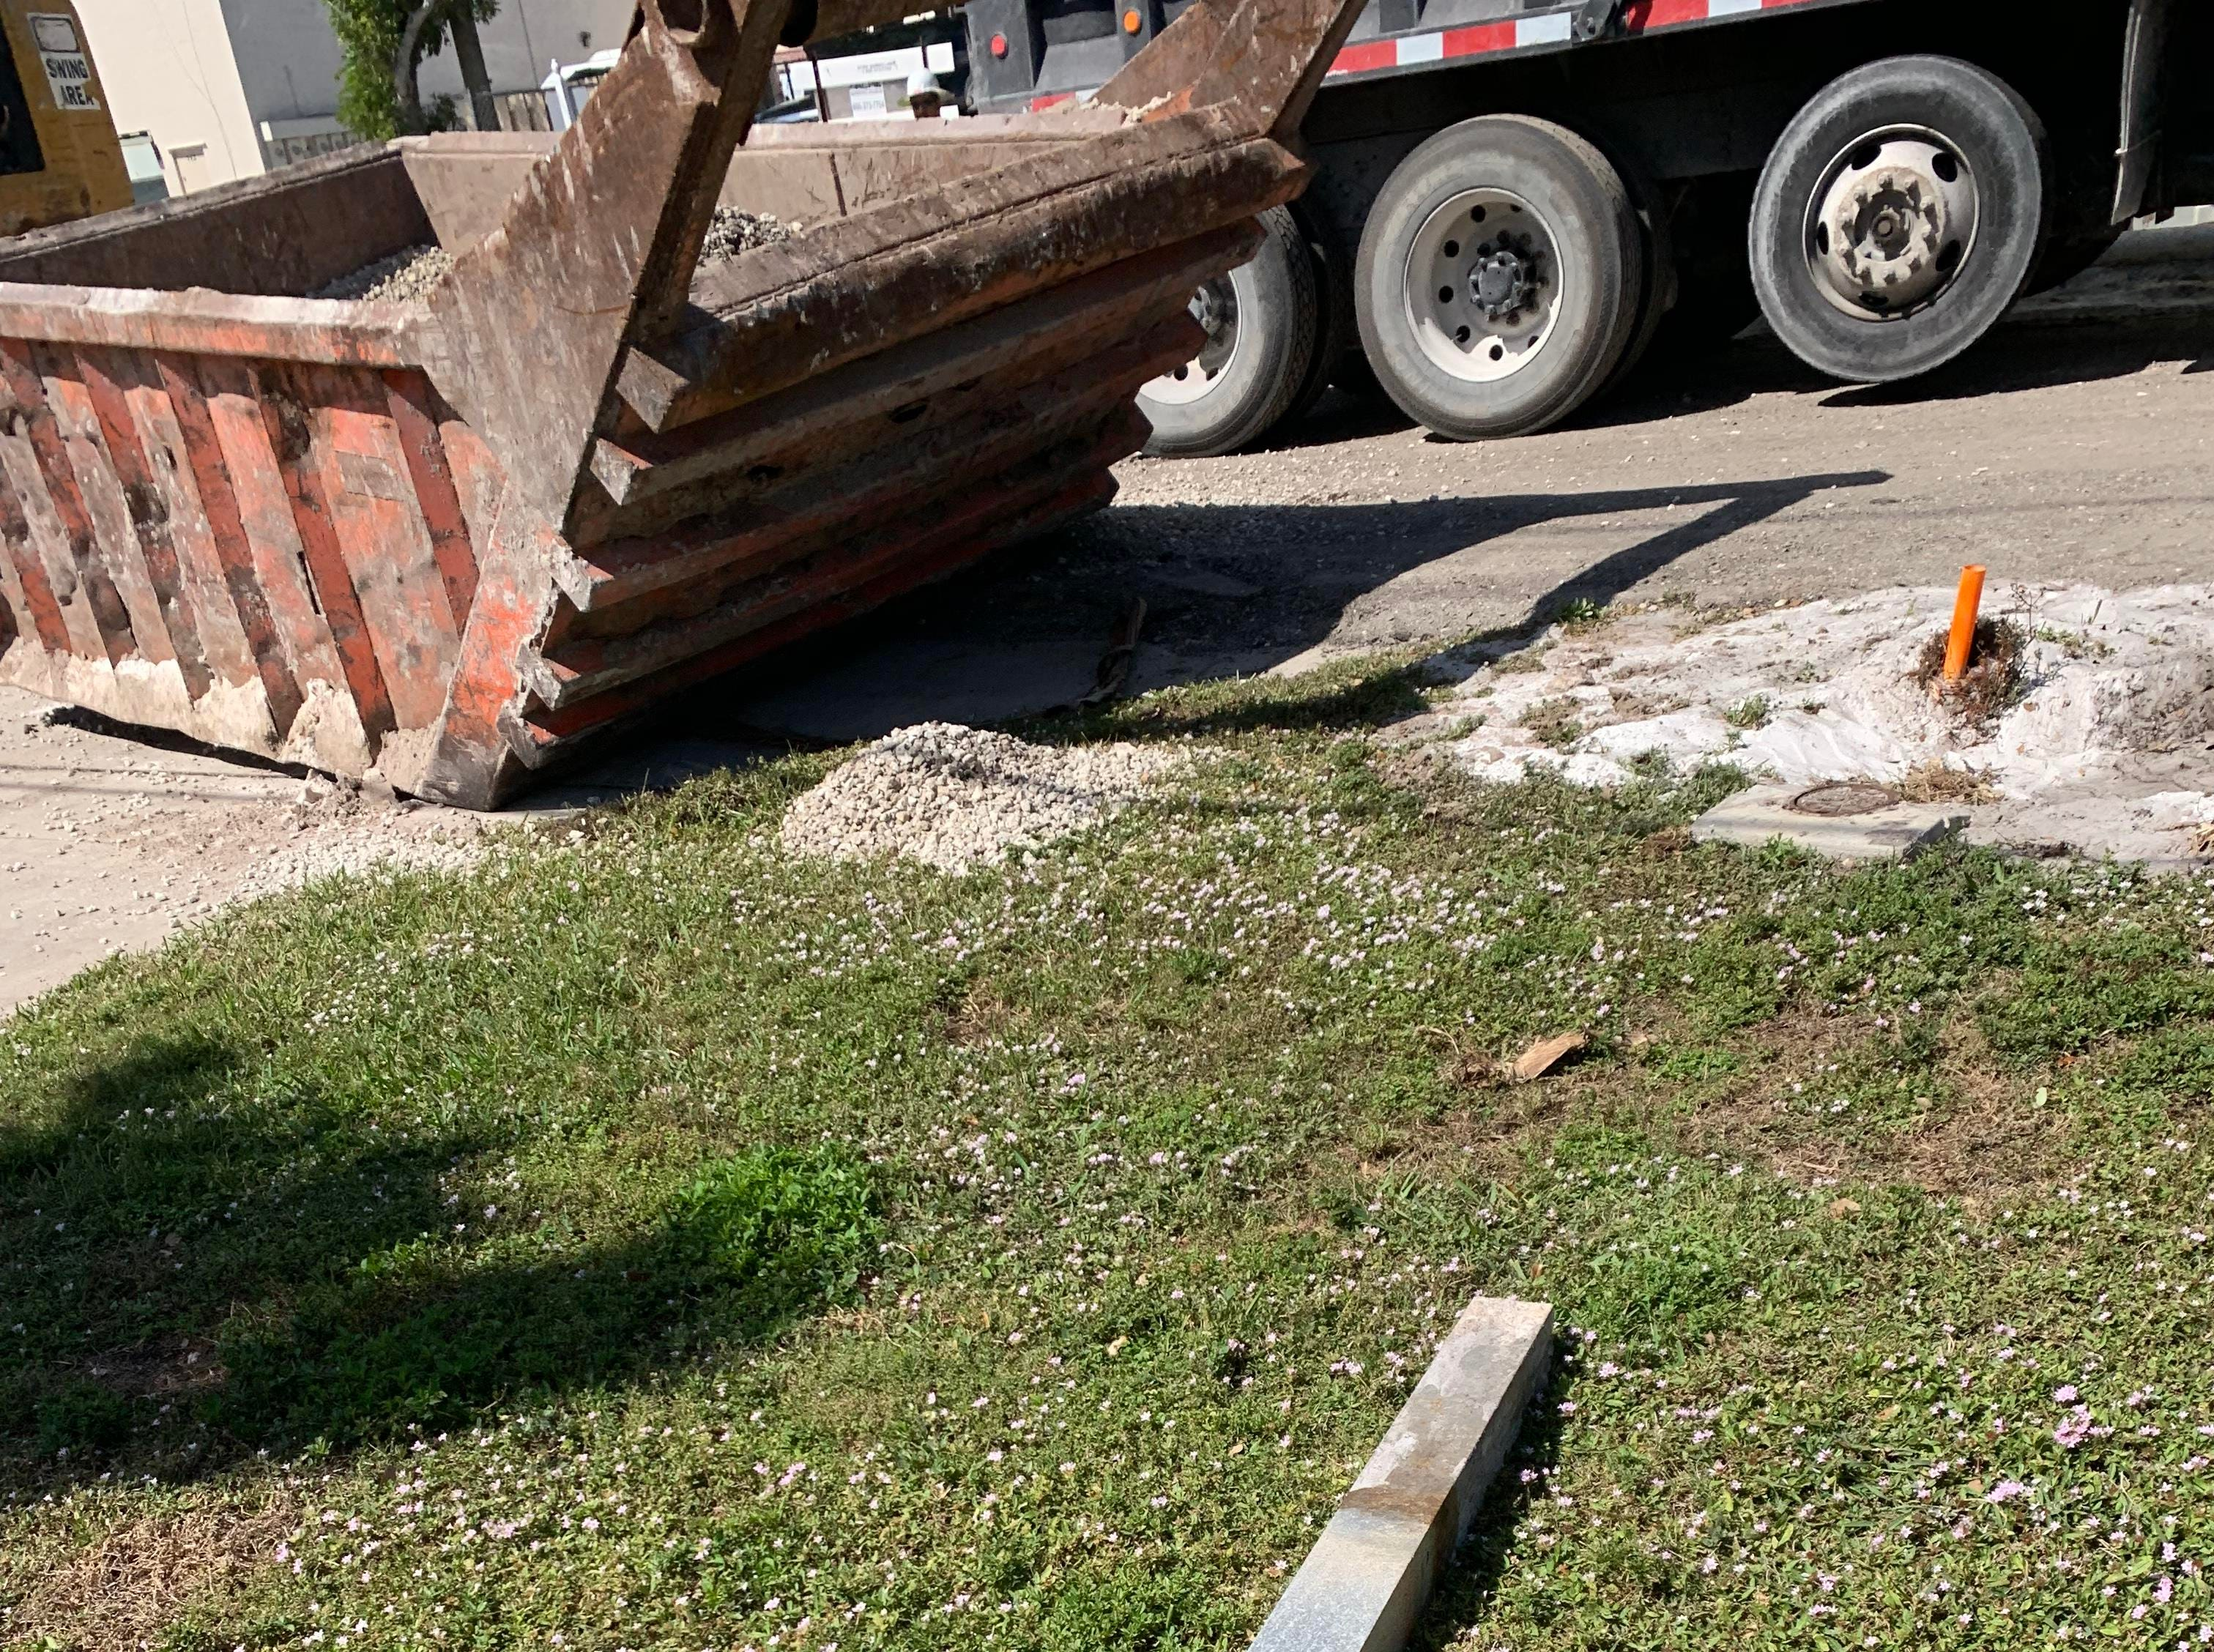 Naples resident Aurora Wells said construction workers knocked over her mailbox during a sanitary sewer system project on Cooper Drive in Naples earlier this year. The Naples City Council voted in October to convert all homes in the city's utilities service district from septic tanks to city sewer.